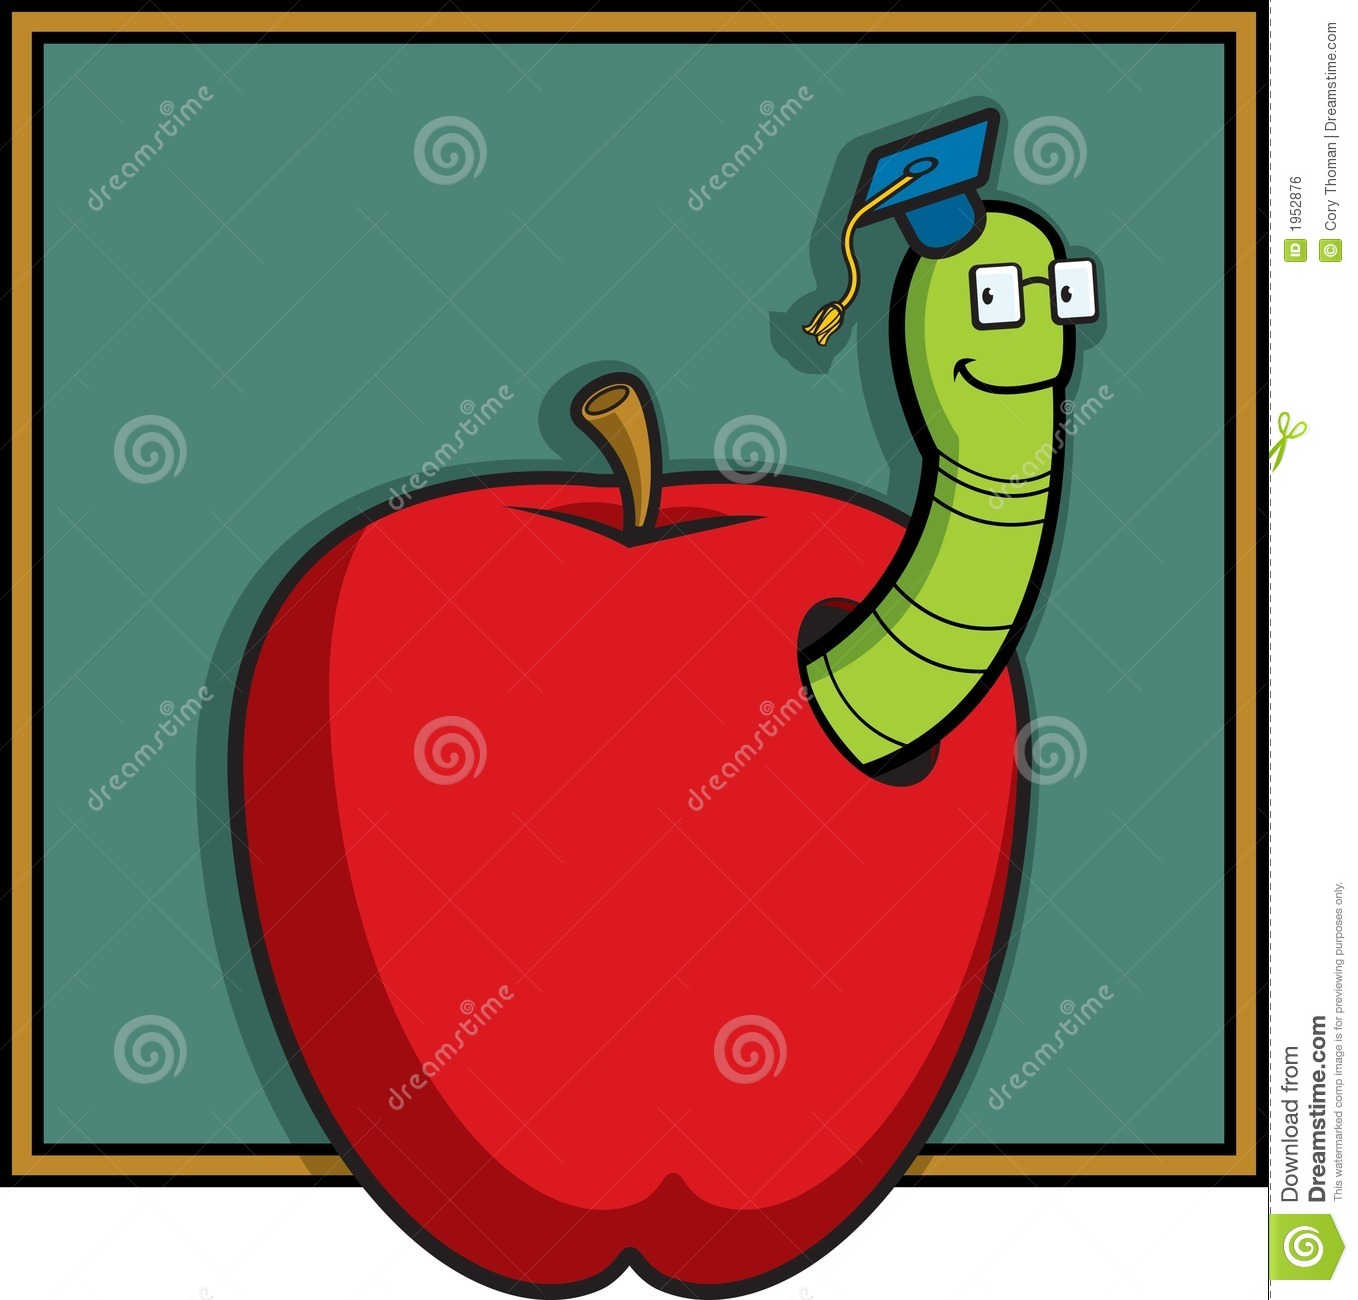 clipart apple worm - photo #27